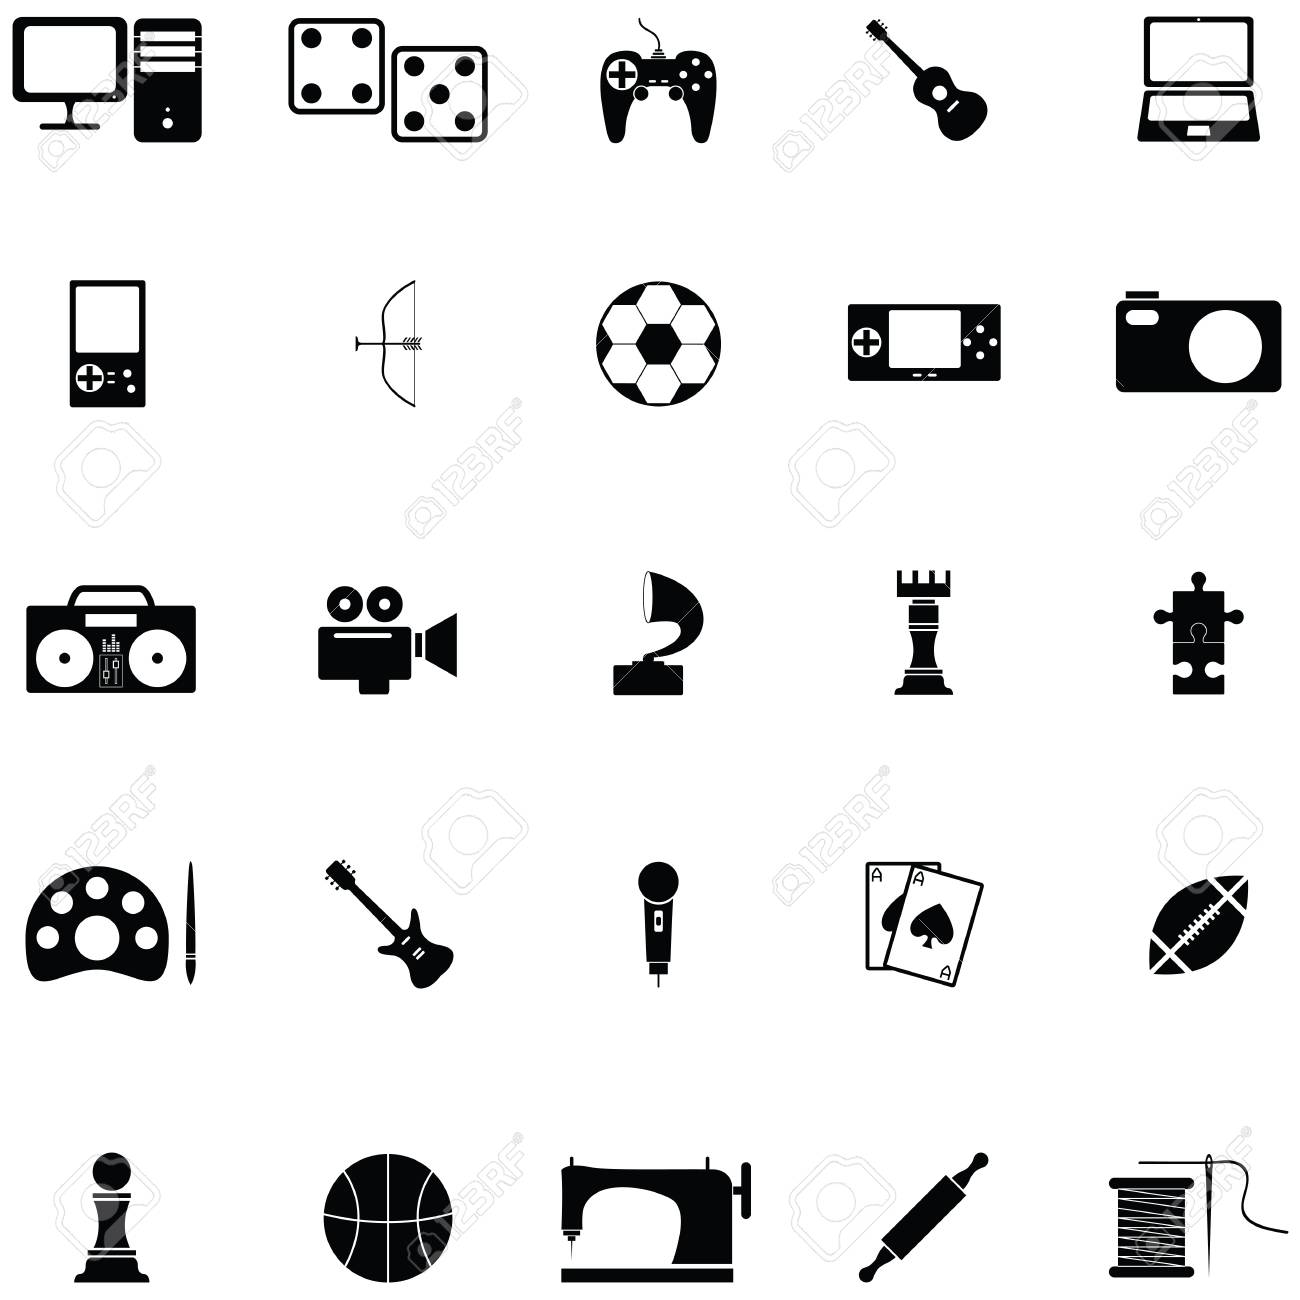 Hobby Icon Set Royalty Free Cliparts Vectors And Stock Illustration Image 94387496